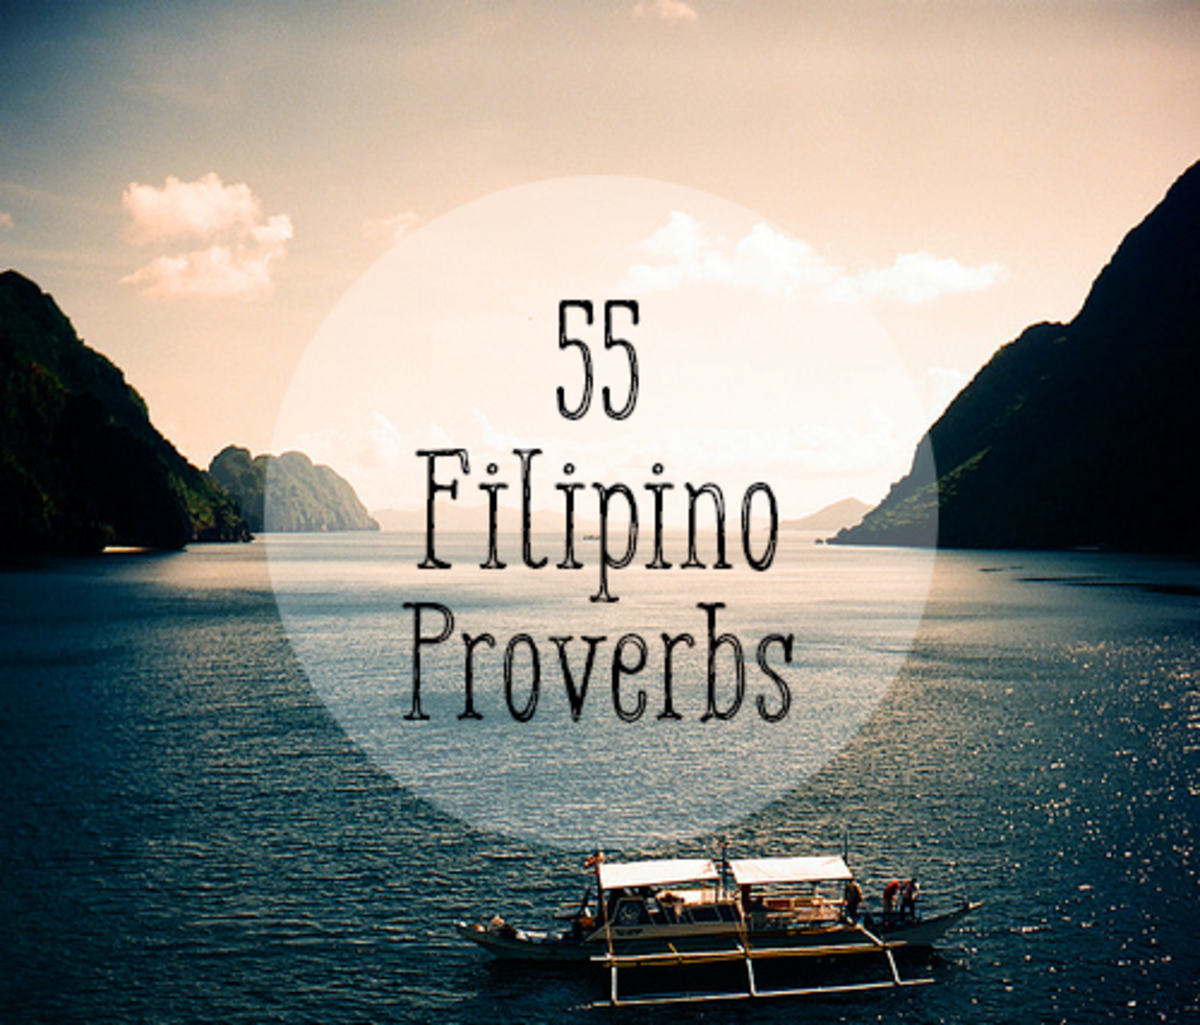 55 Examples of Filipino Proverbs